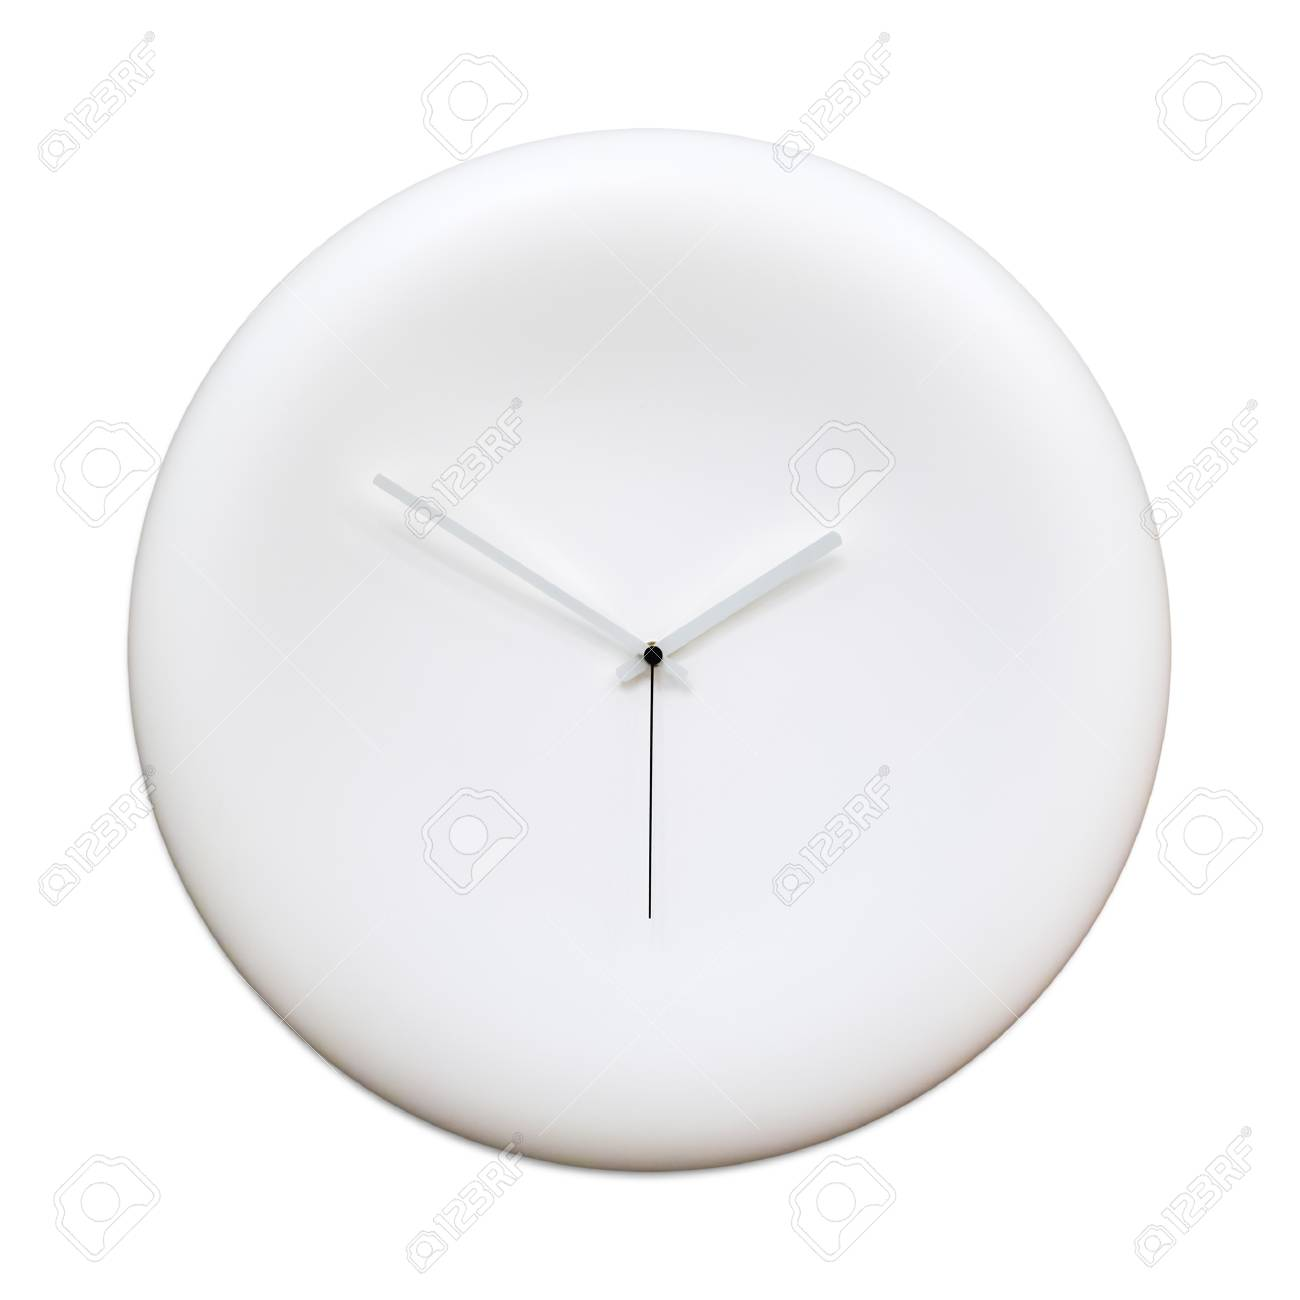 Blank modern analog clock with arrows isolated on white background